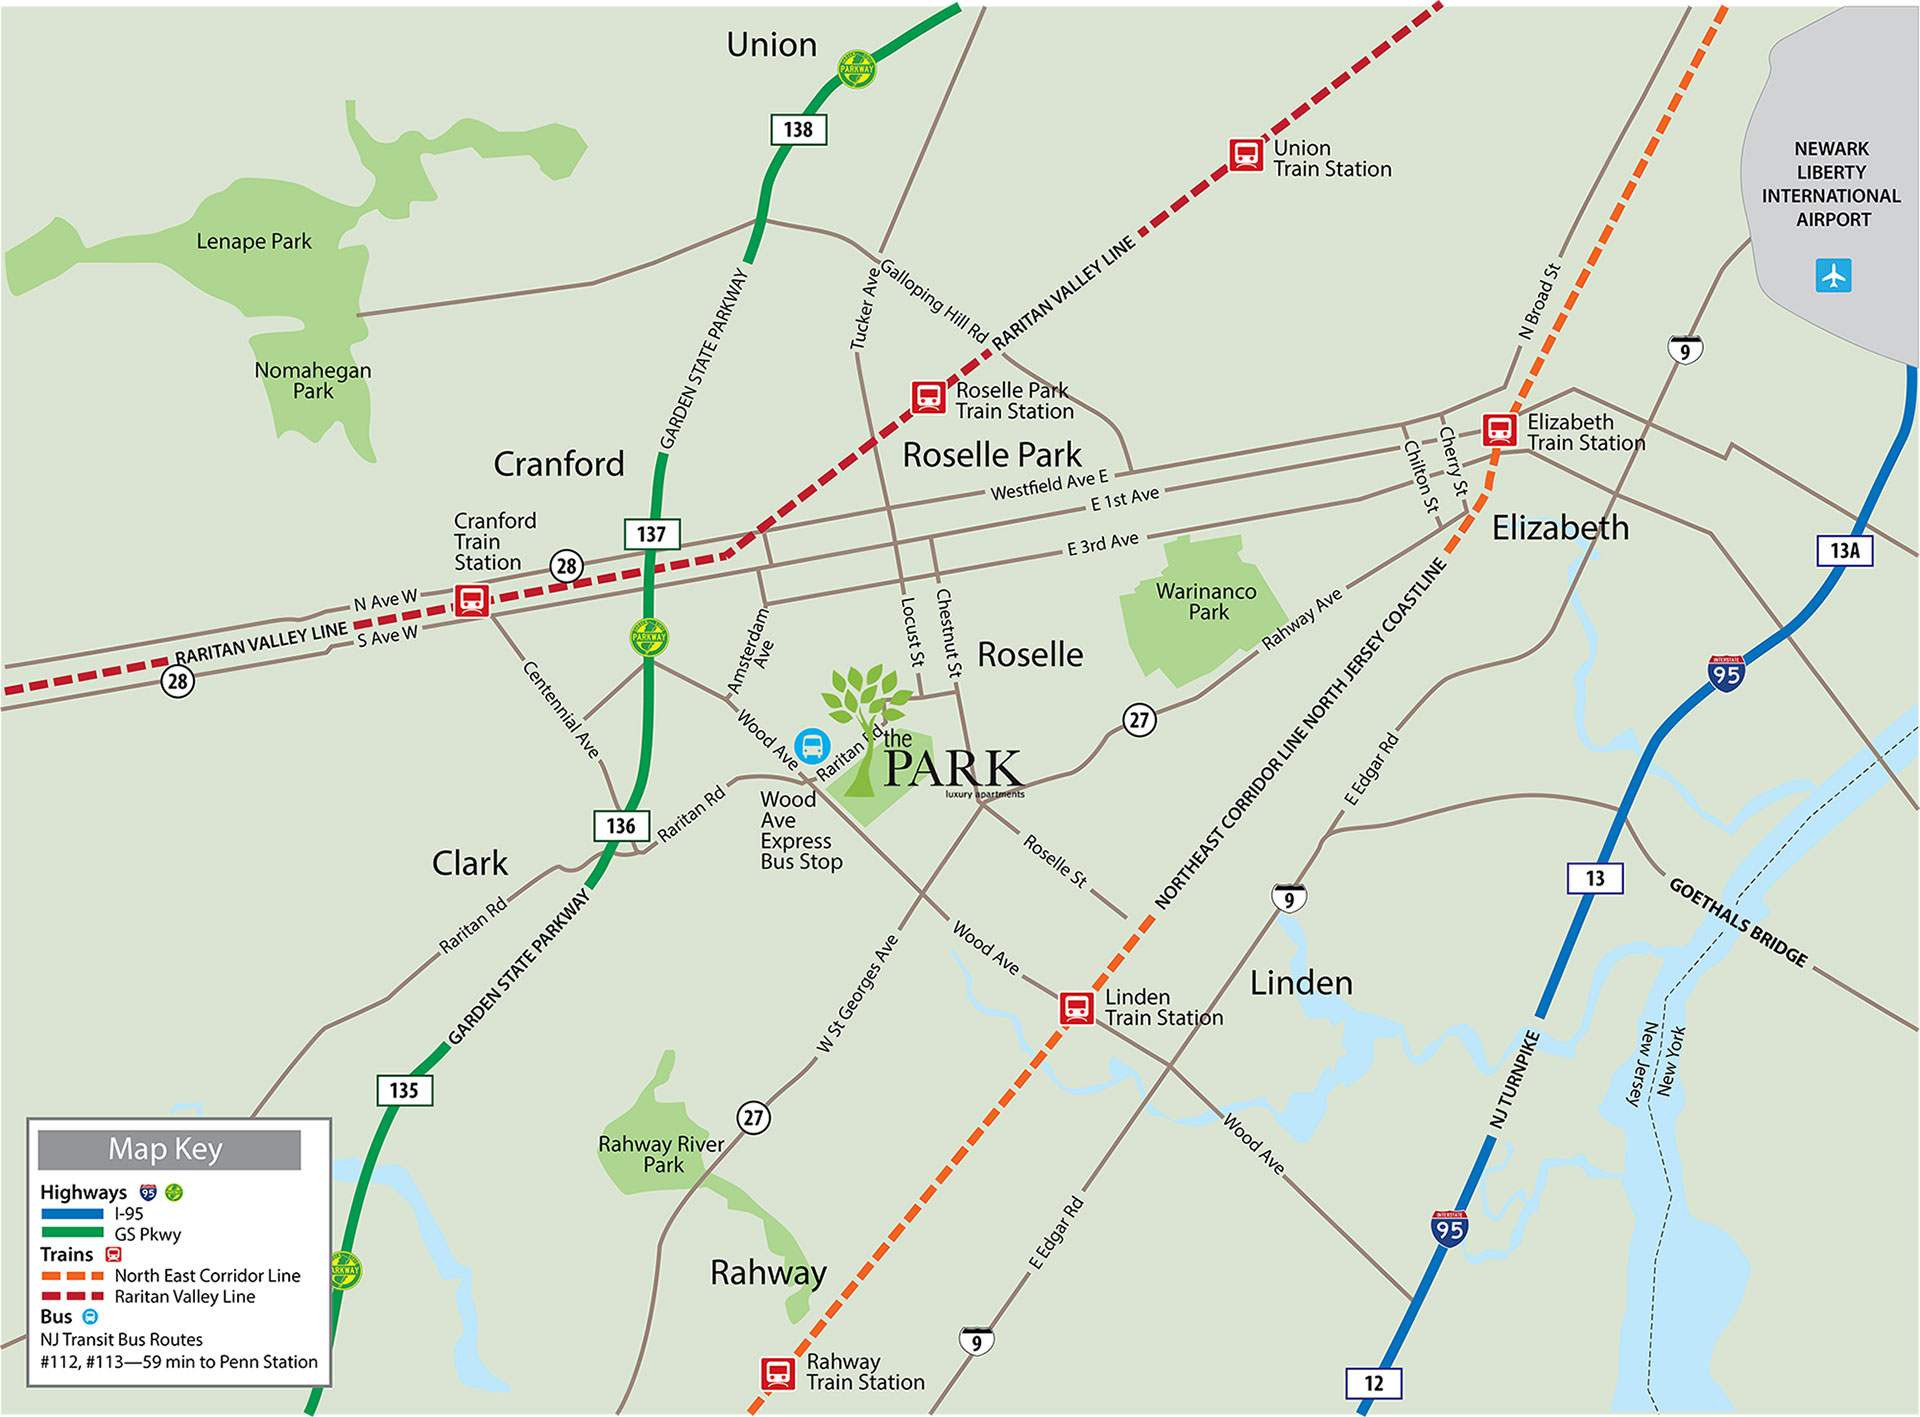 Located in Roselle NJ, The Park apartments have easy access to New York City.